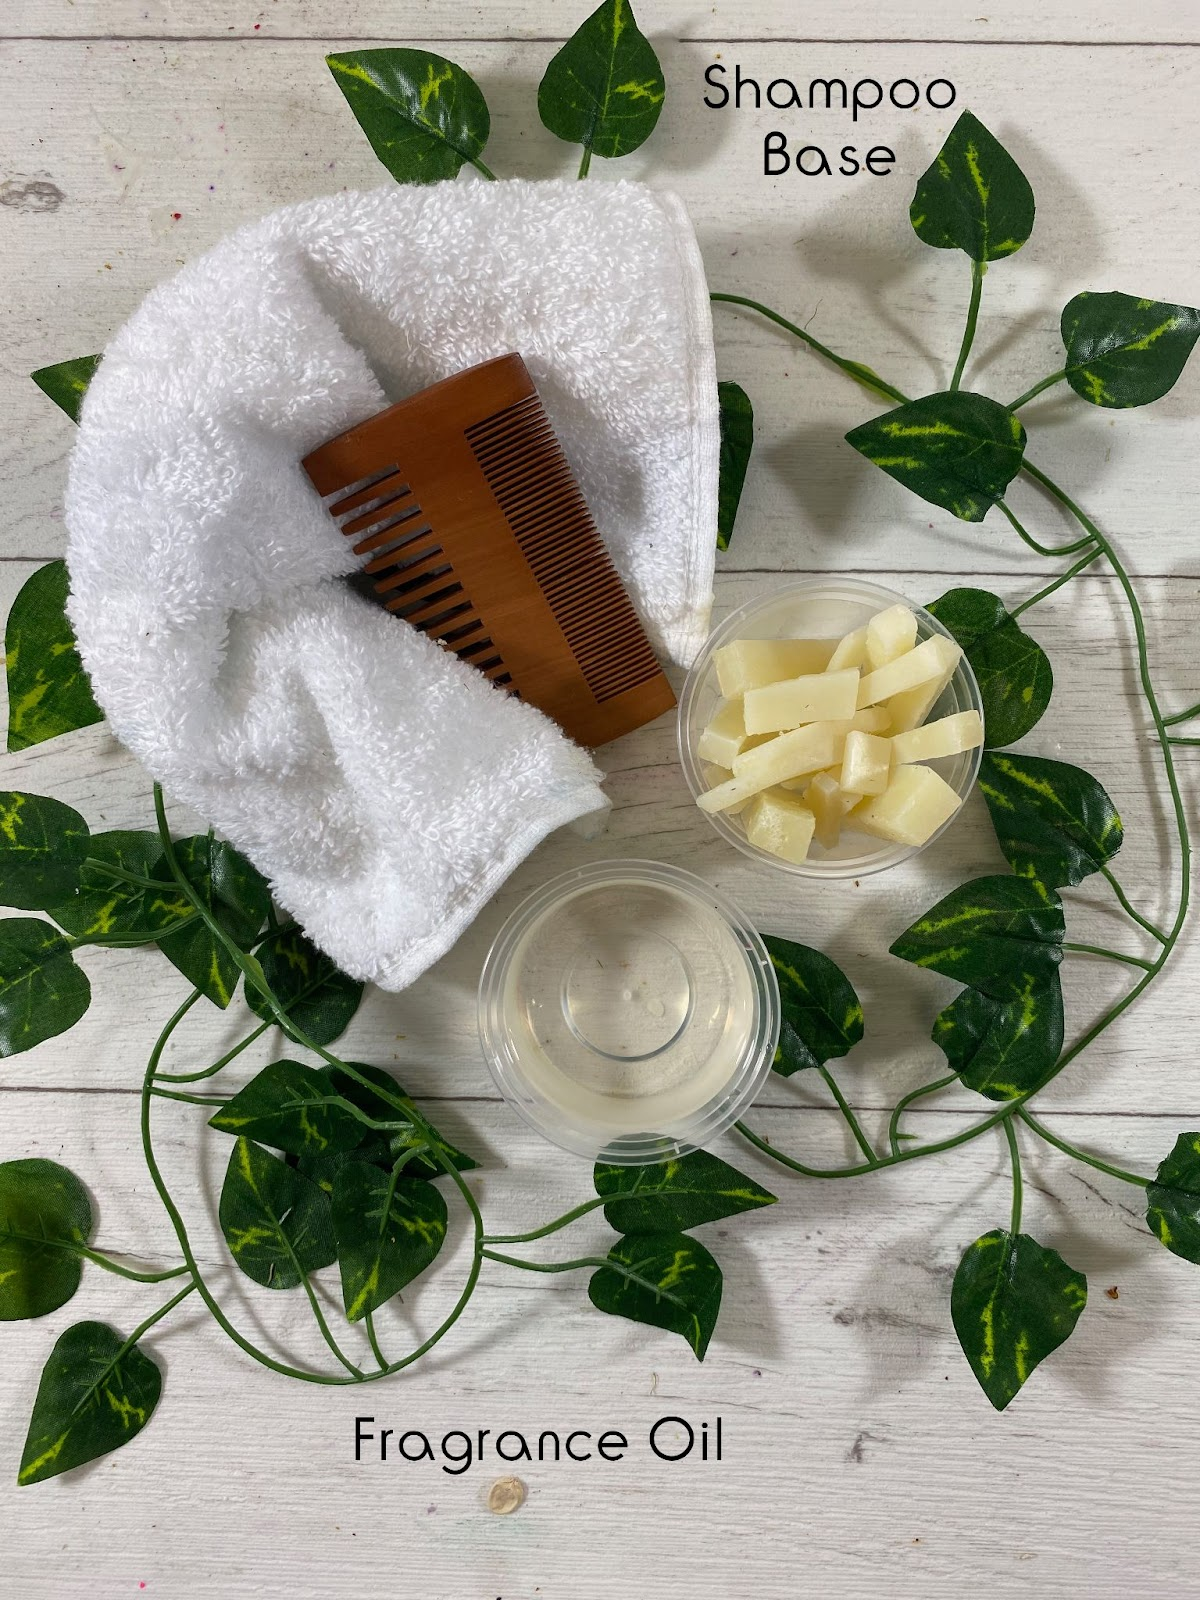 Ingredients for shampoo bars